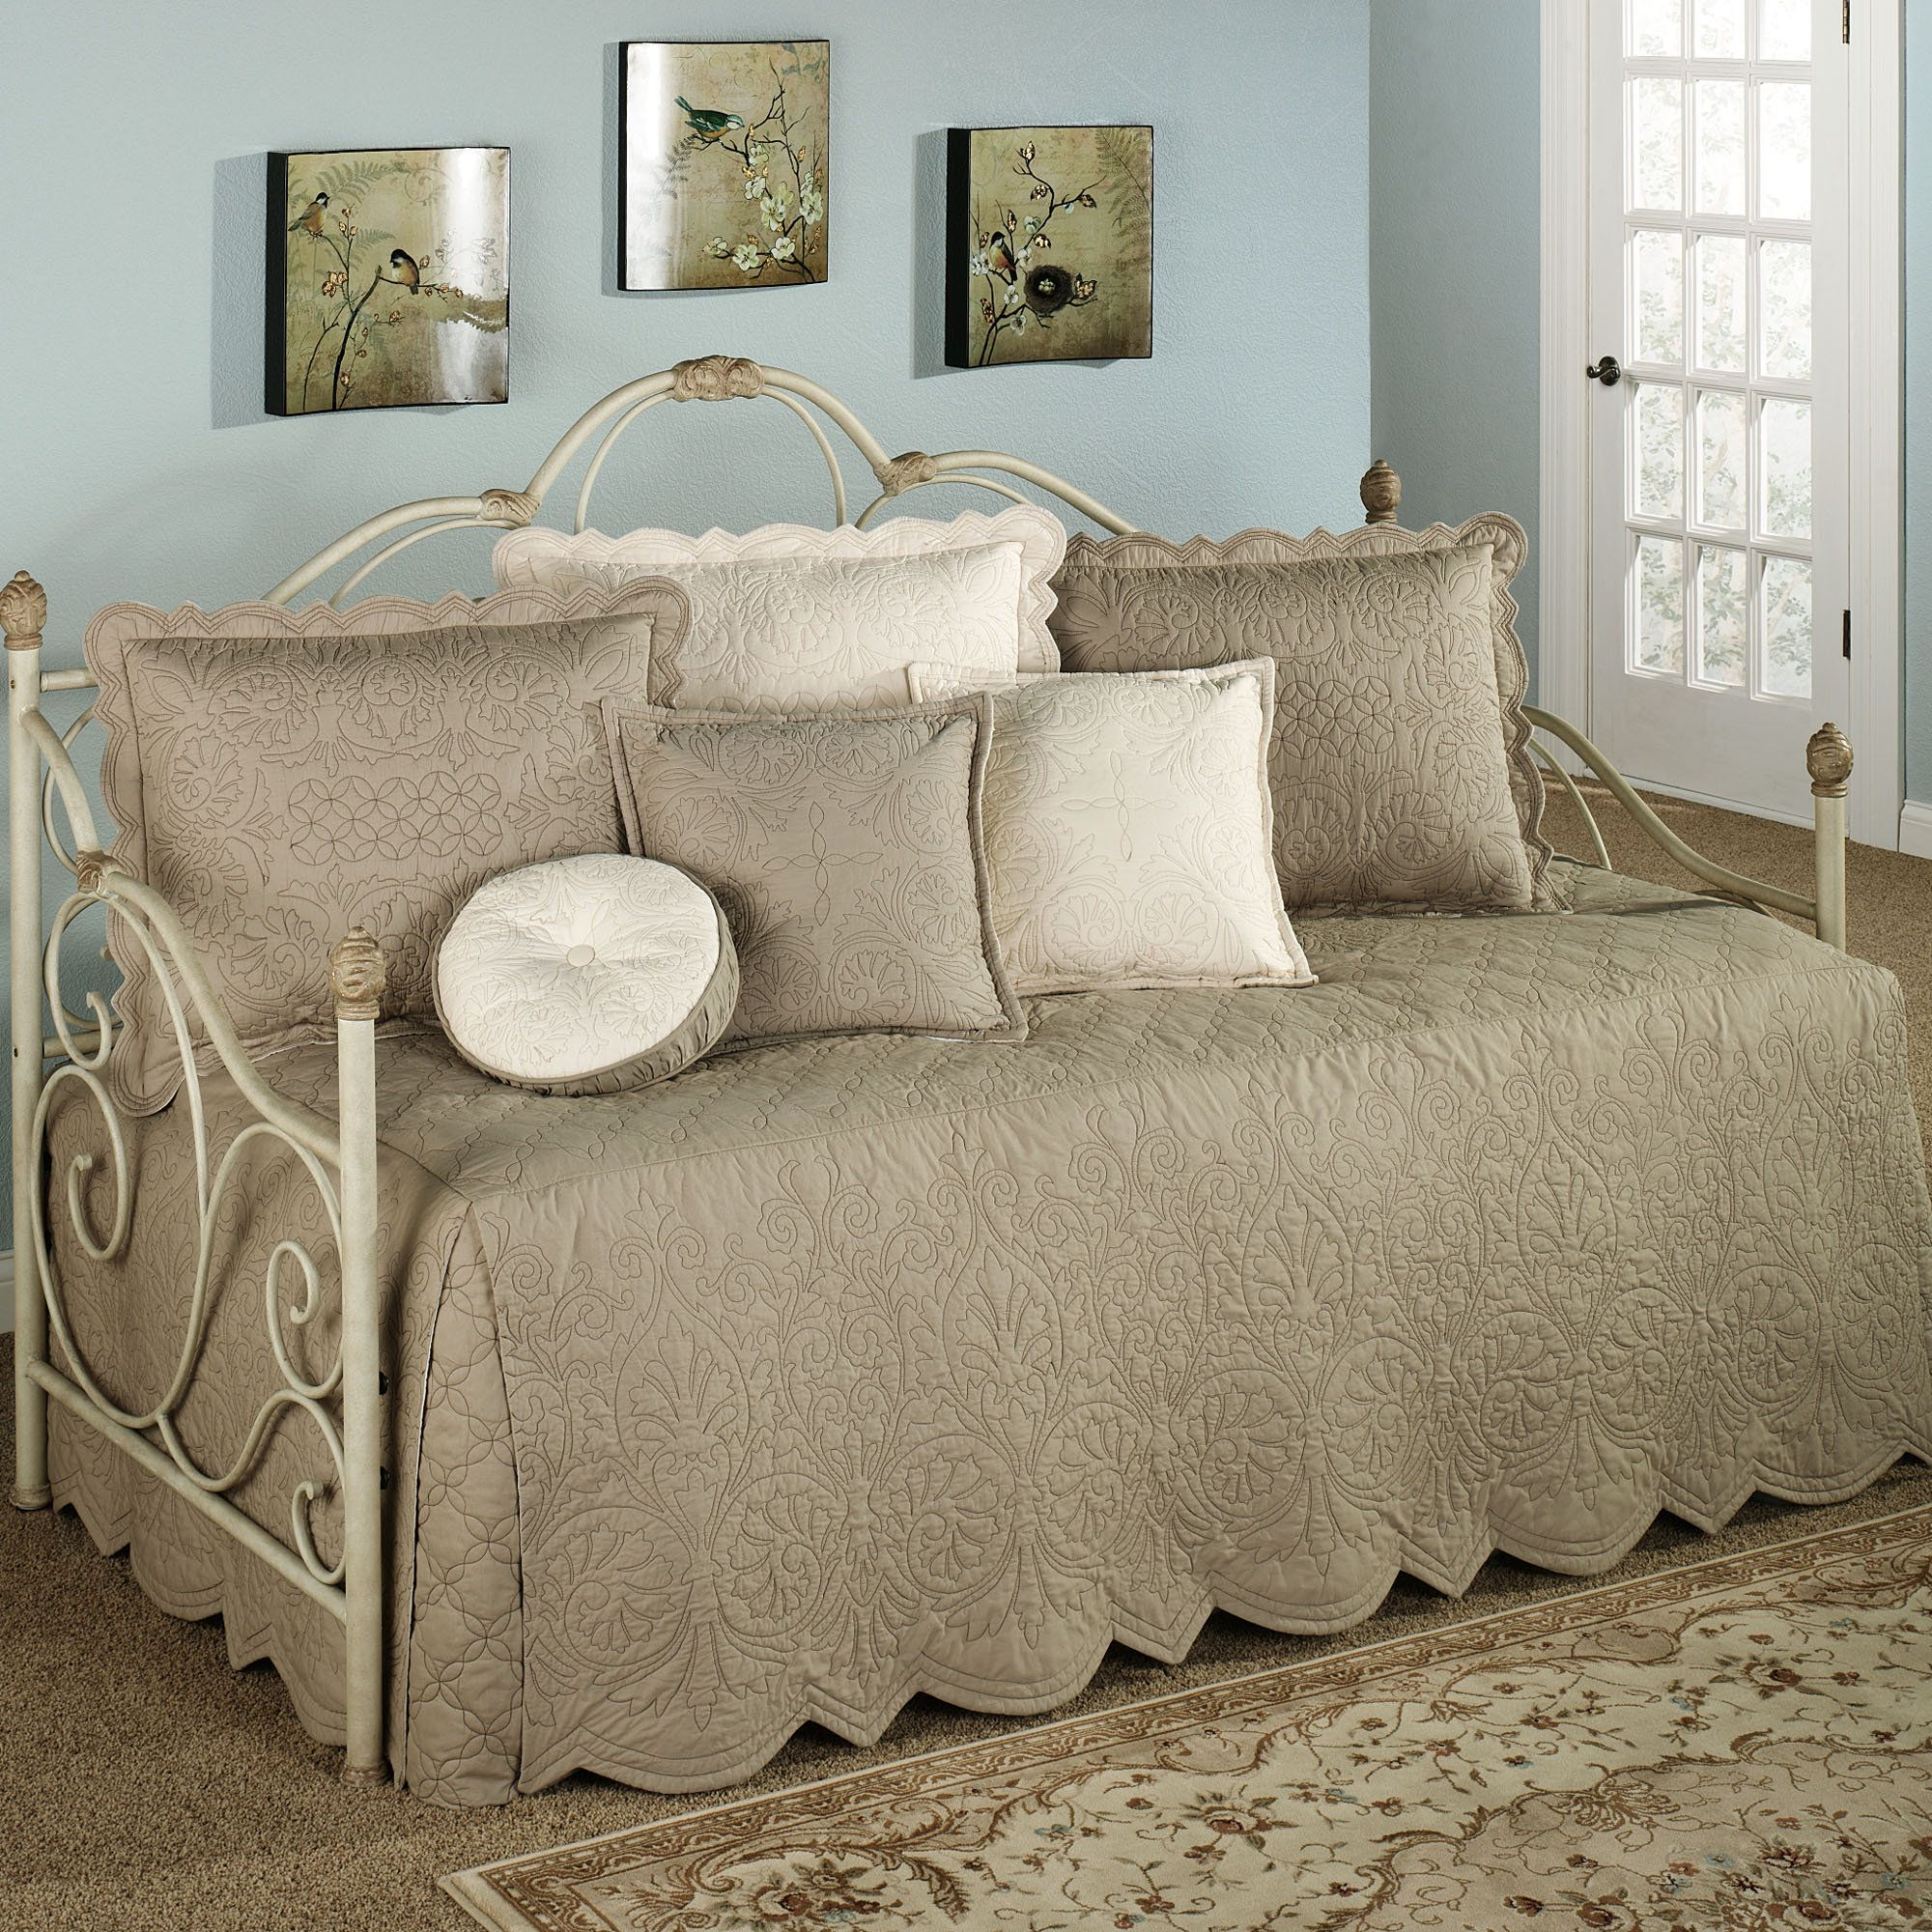 Beautiful Bedroom Pillow Sets With Elegant Pillows And